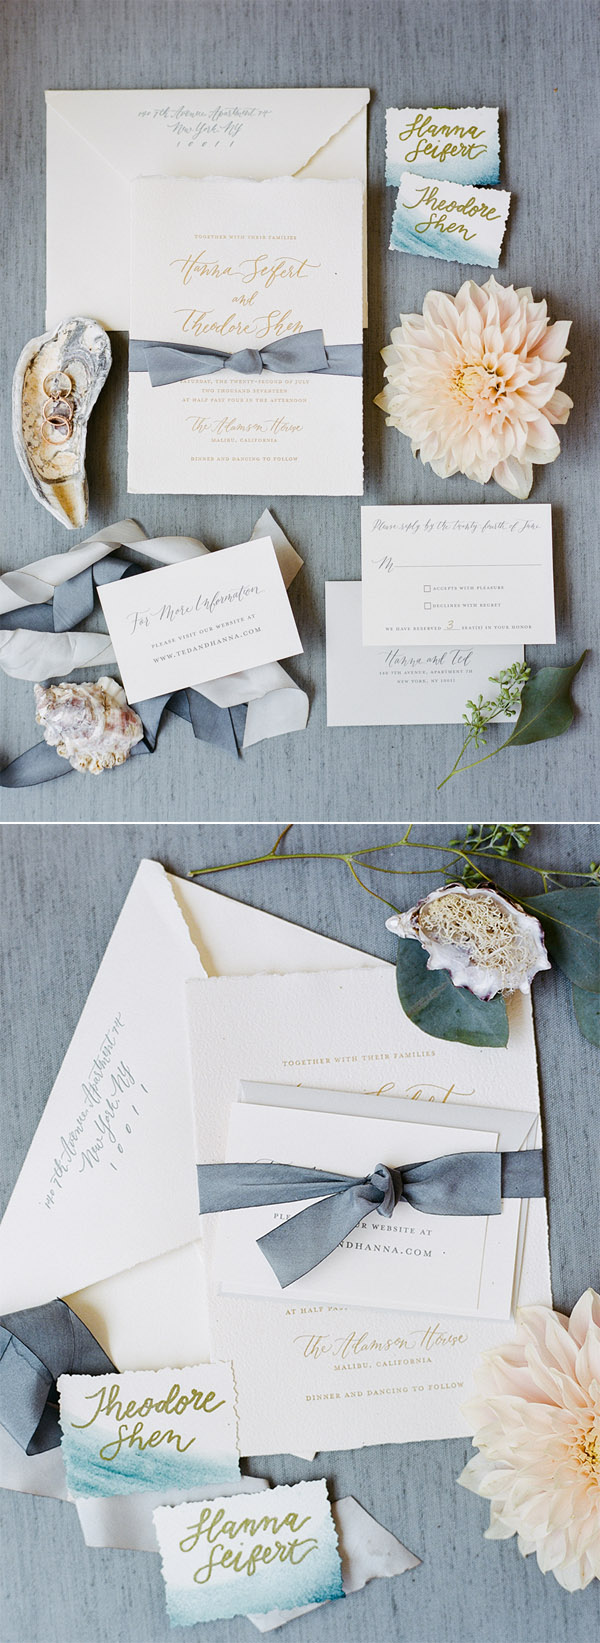 Elegant slate wedding invitation suite